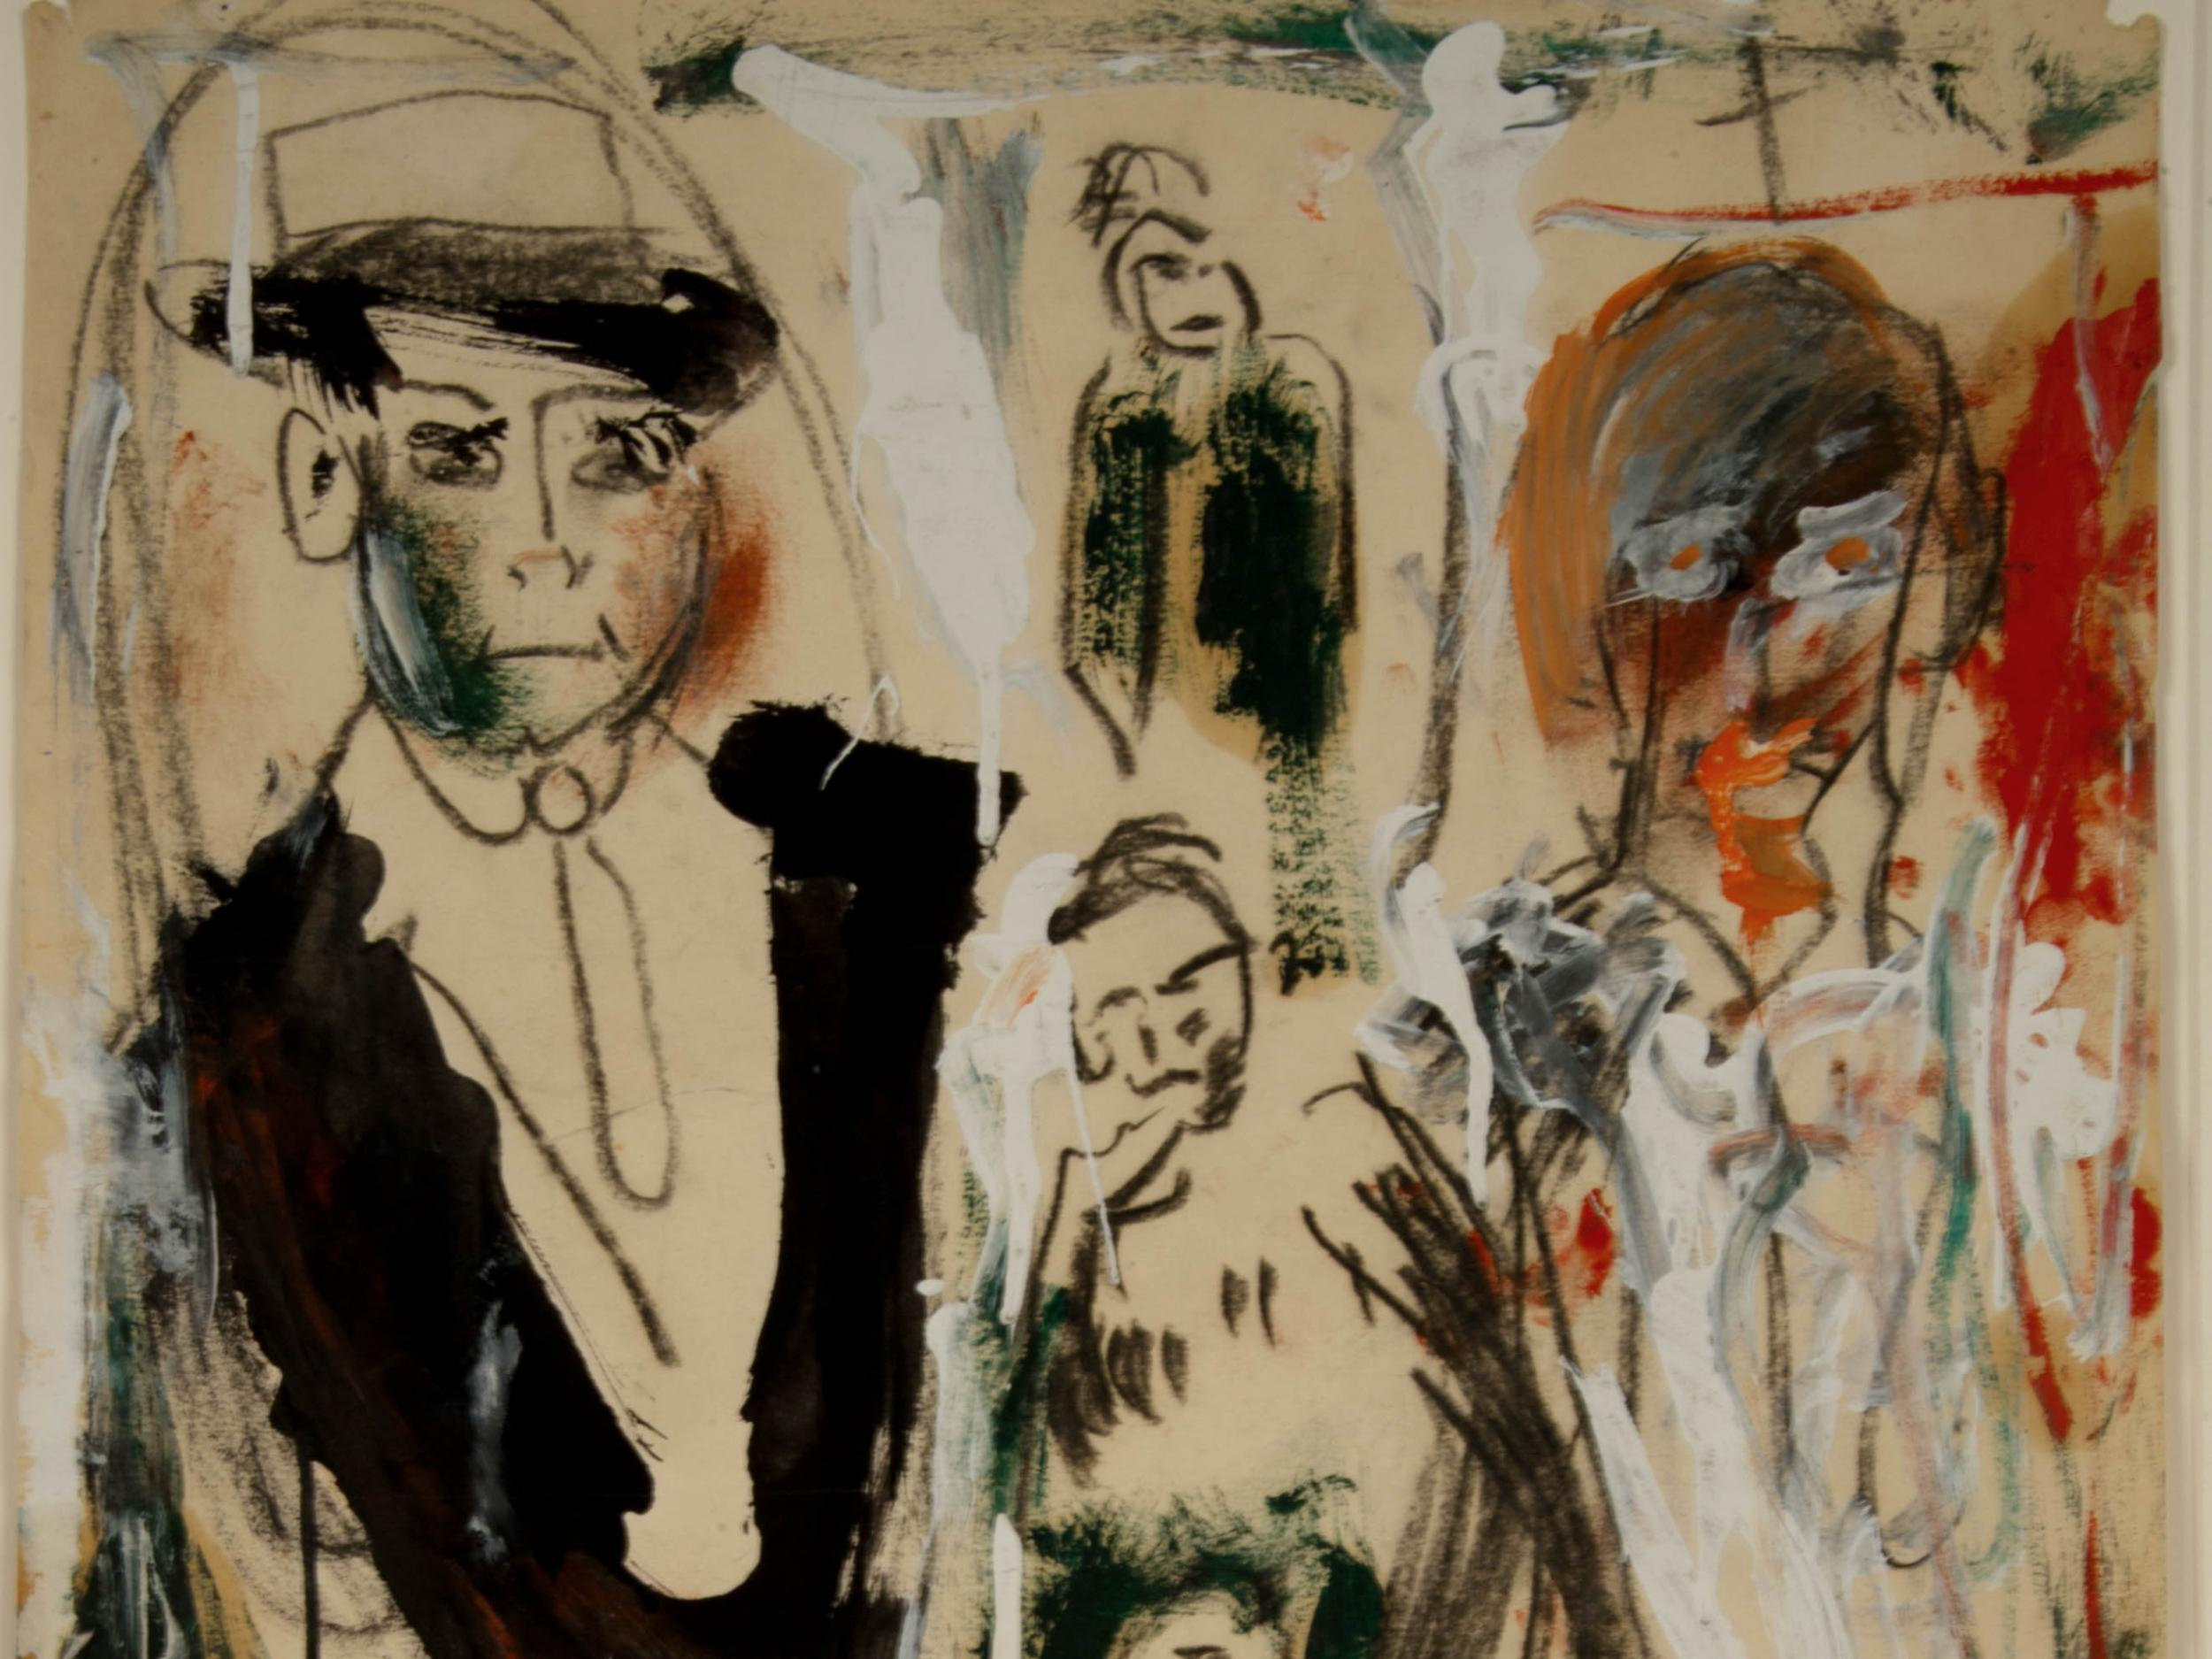 Painting - latest news, breaking stories and comment - The Independent